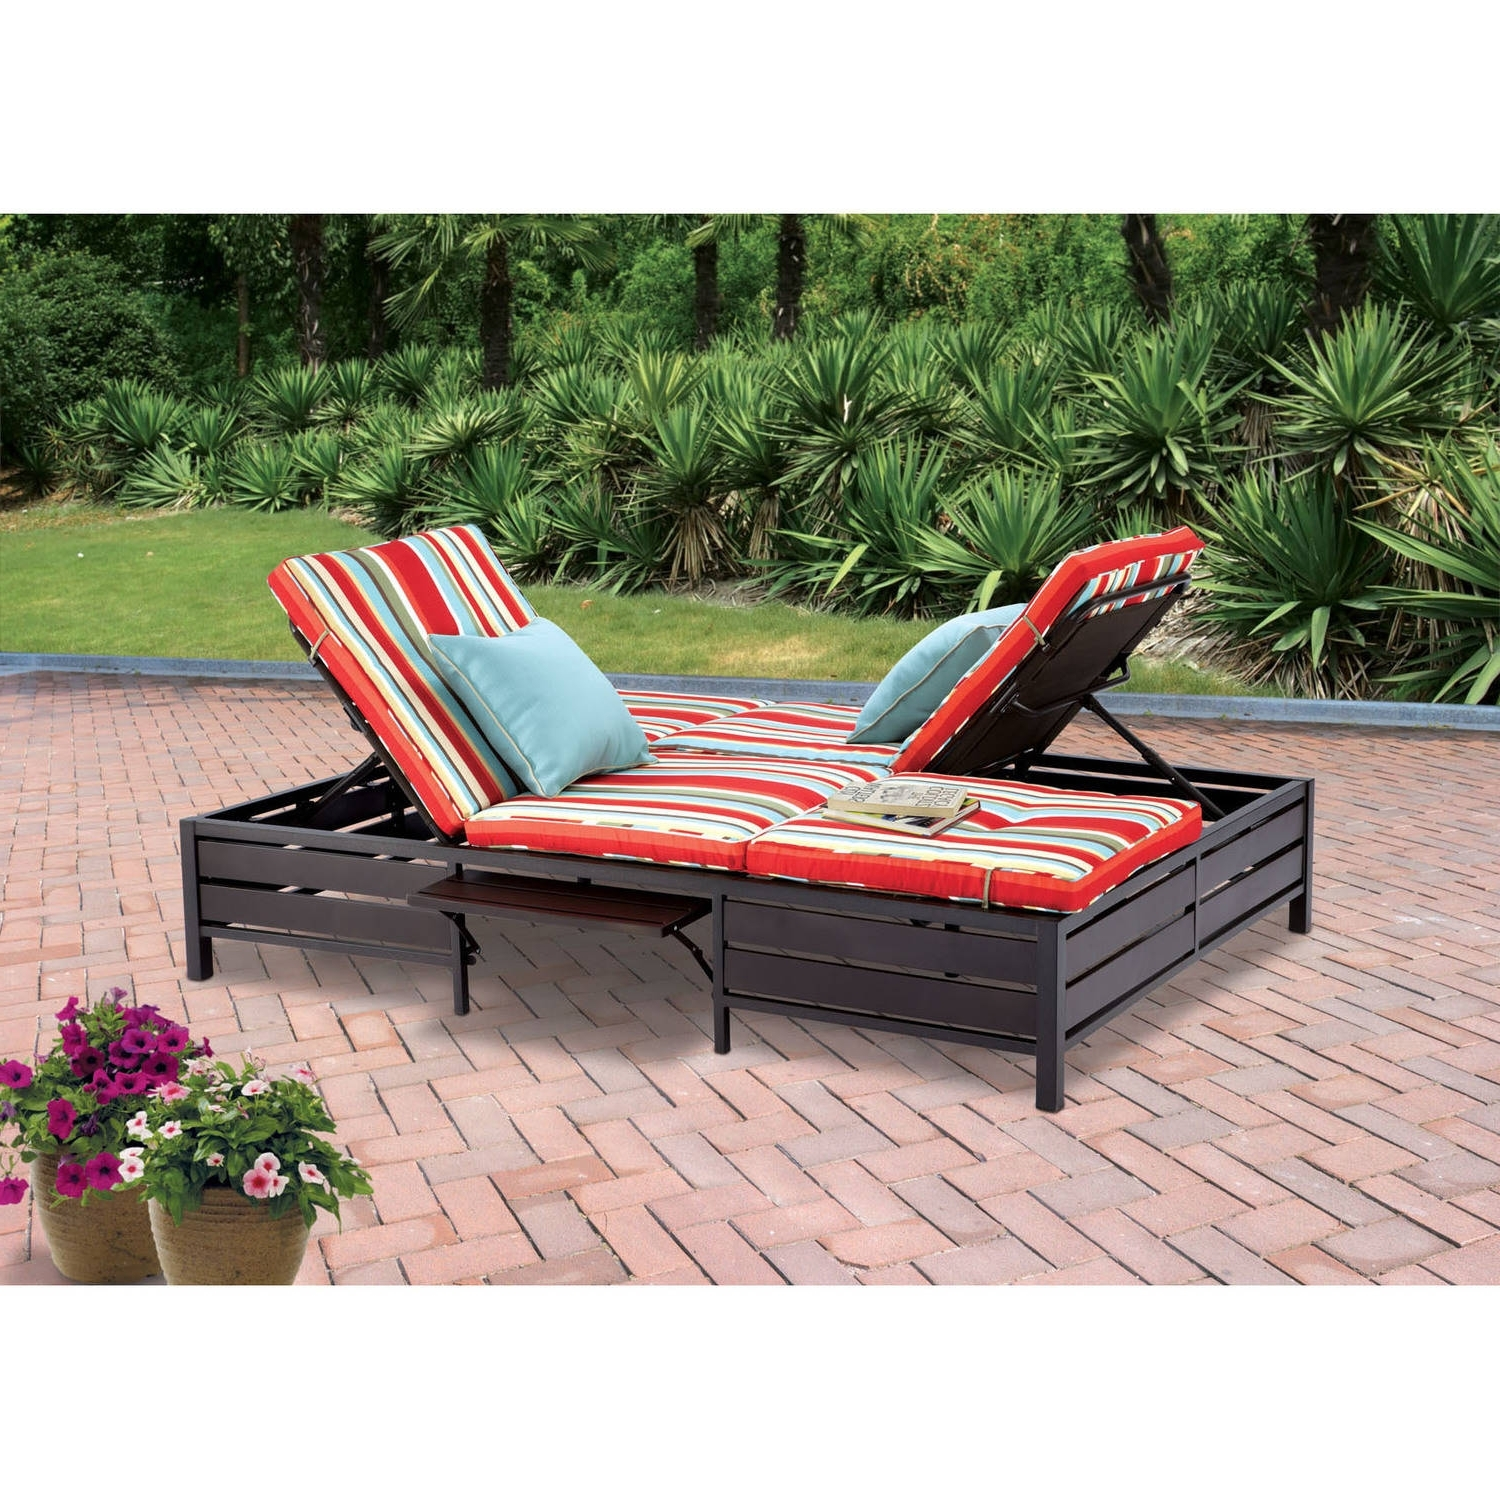 Walmart Chaise Lounge Chairs In Widely Used Mainstays Outdoor Double Chaise Lounger, Stripe, Seats 2 – Walmart (View 13 of 15)